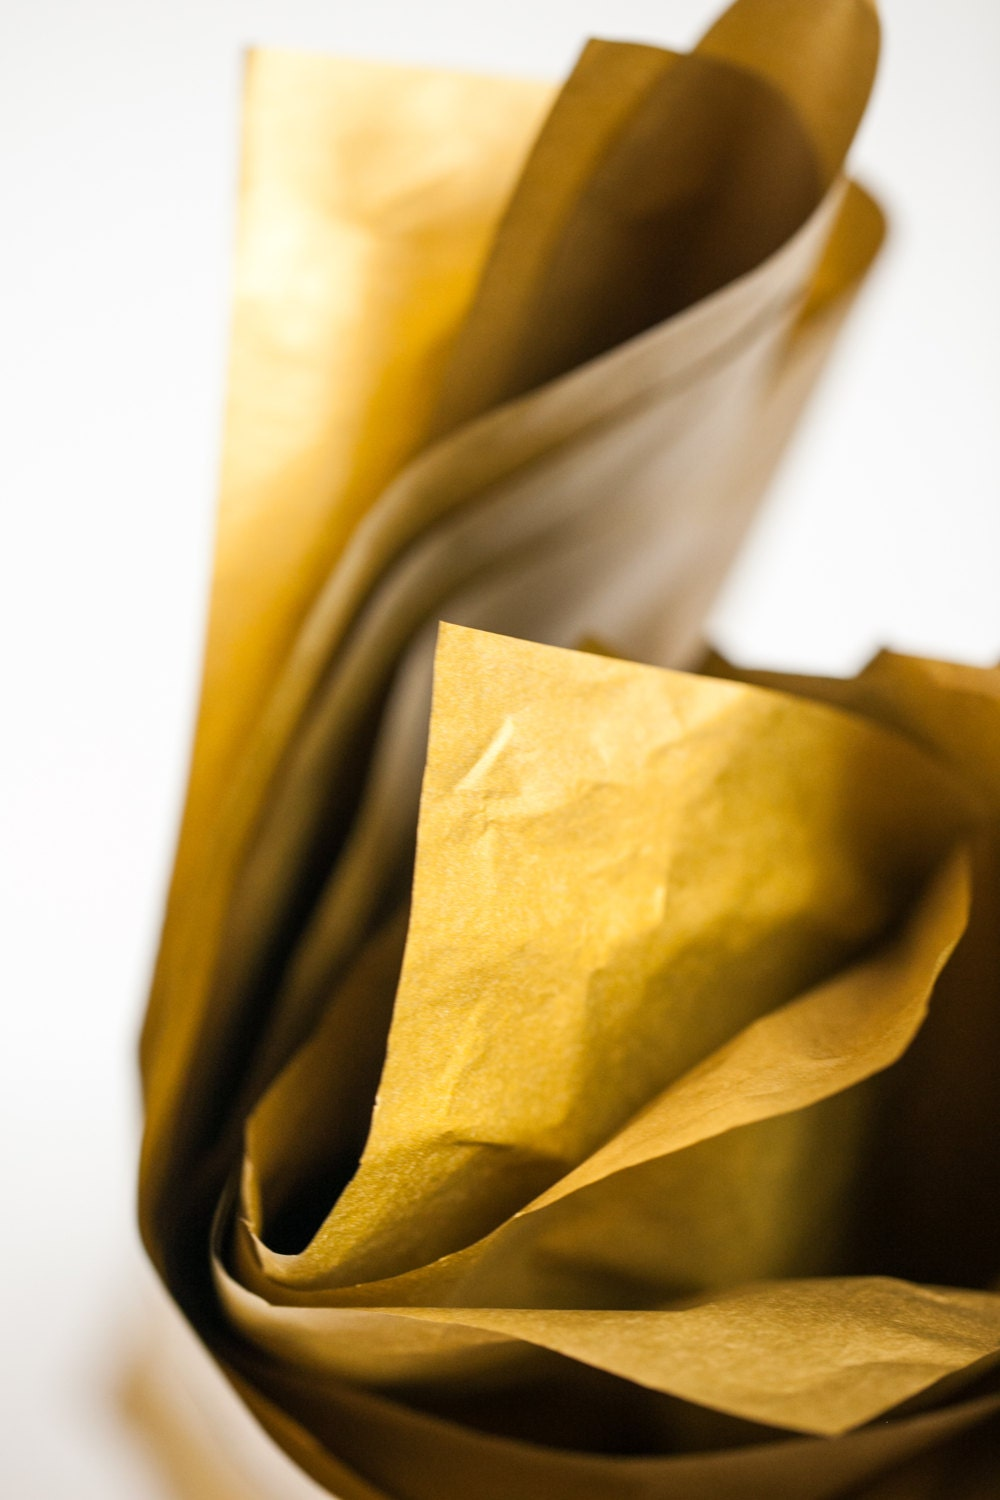 gold tissue paper Tissue paper pom poms are one of the most popular decorative accents used for weddings, birthdays, and any other festive occasion.